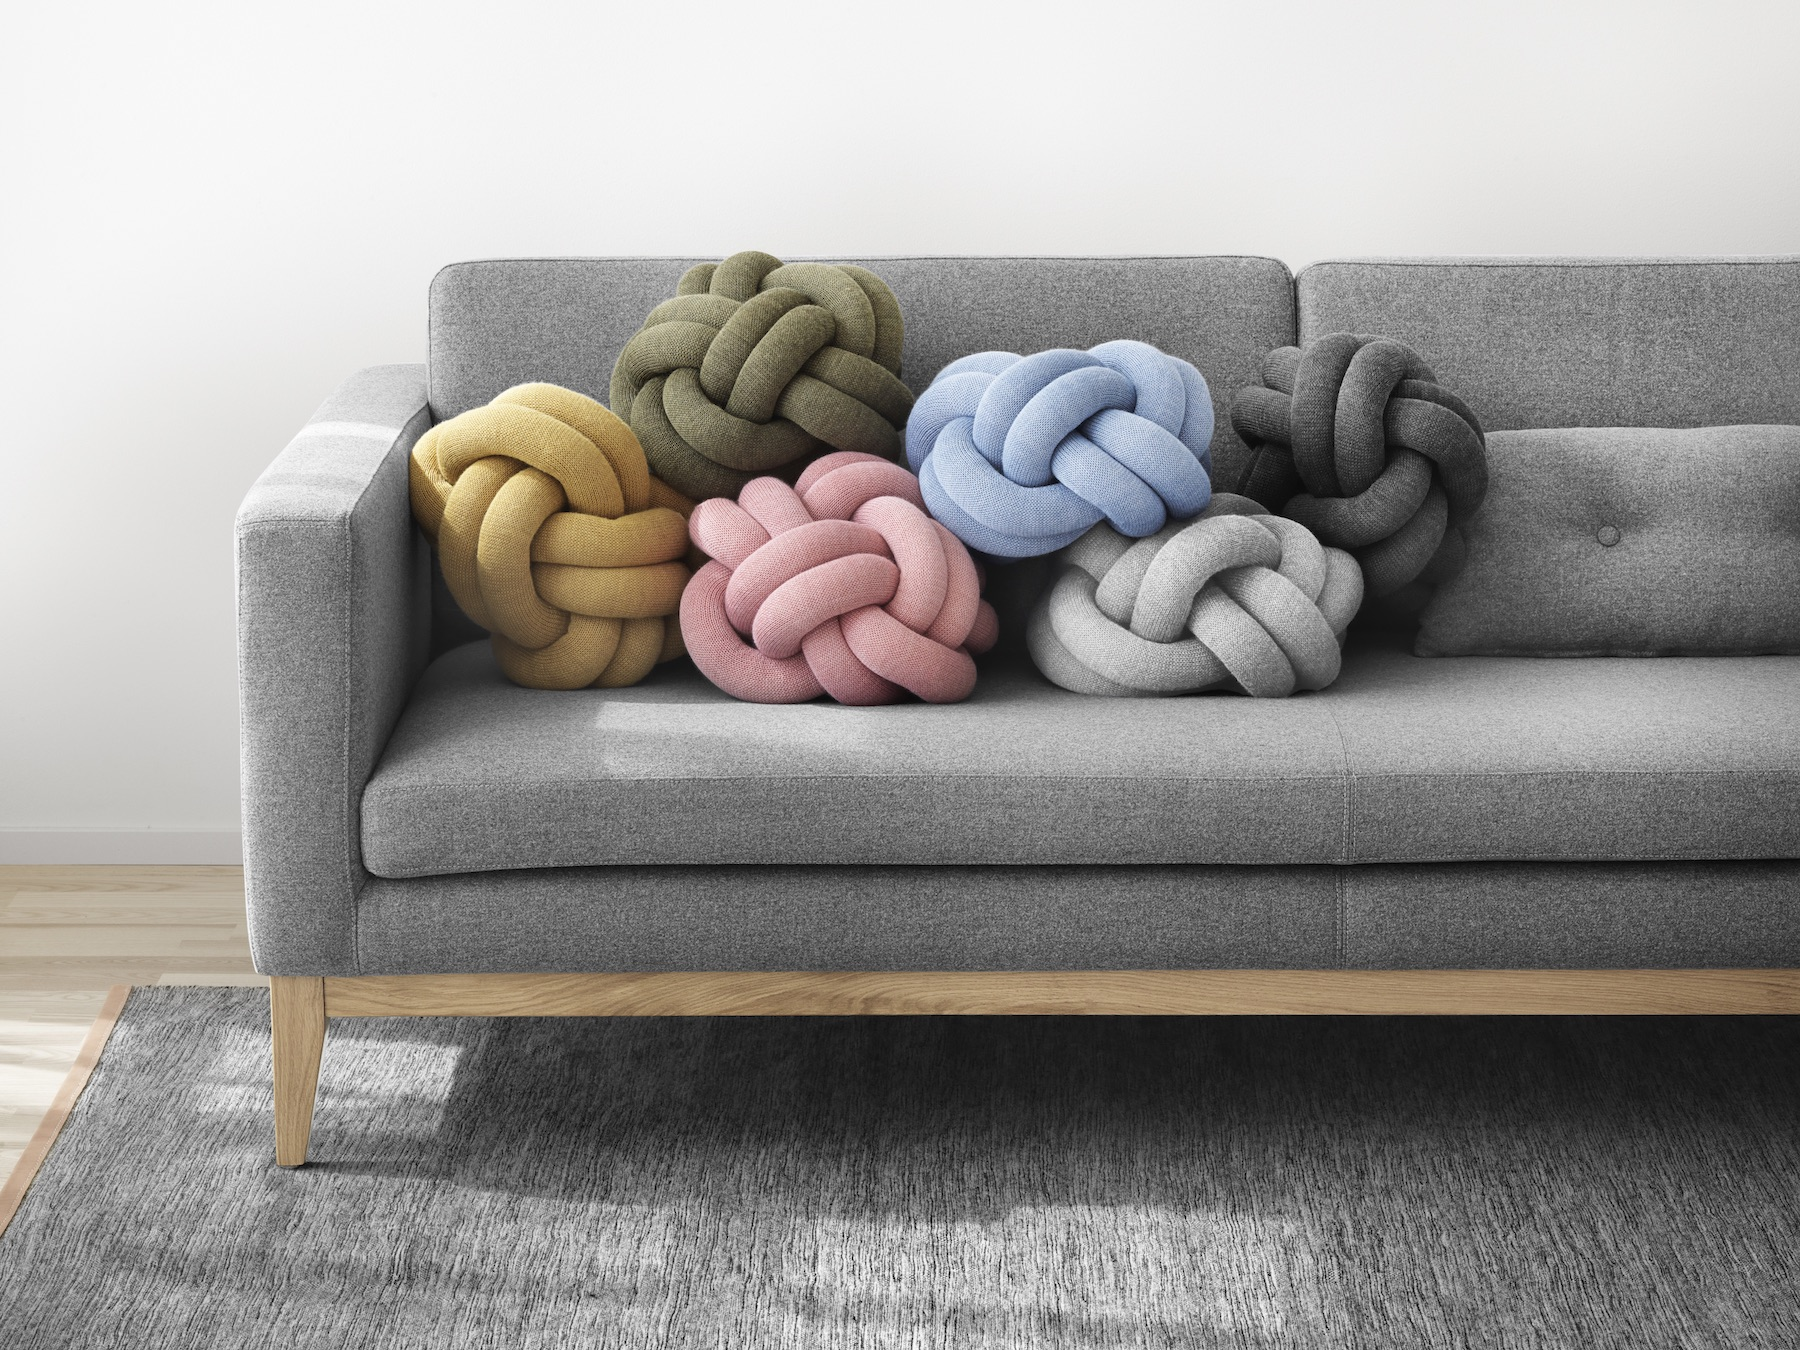 Knot Cushions by Design House Stockholm